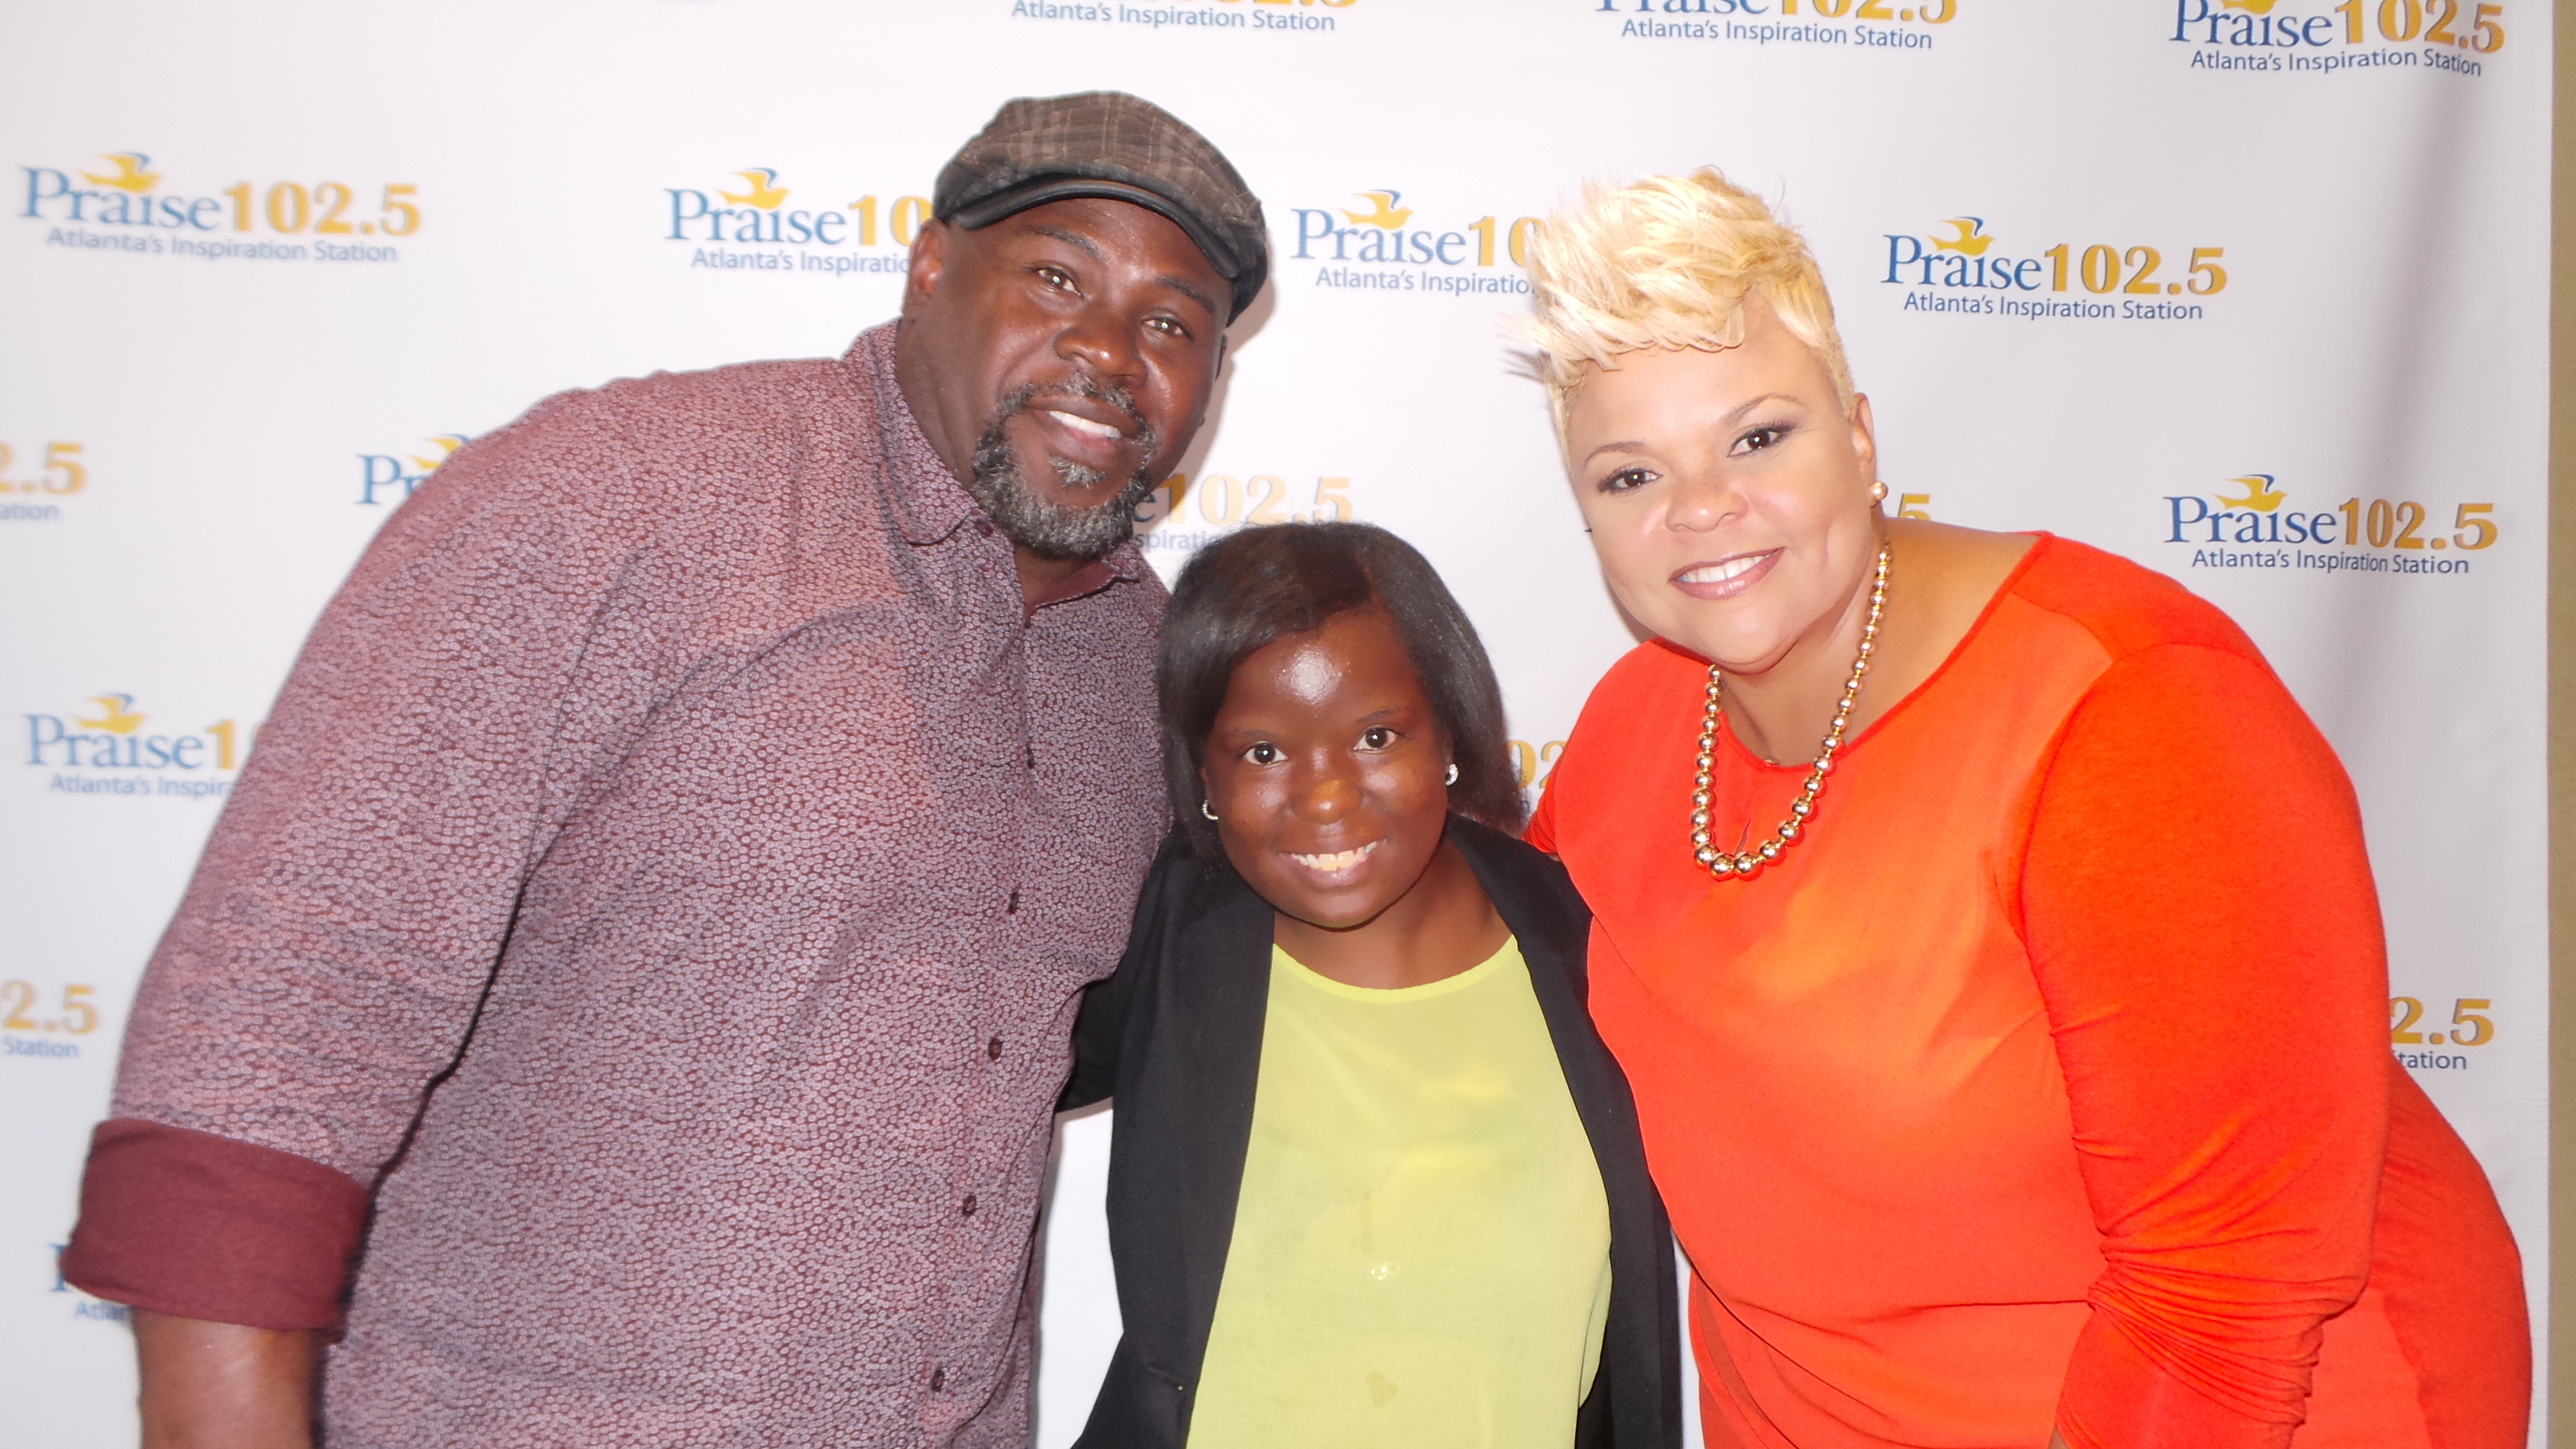 David and Tamela Mann Meet & Greet